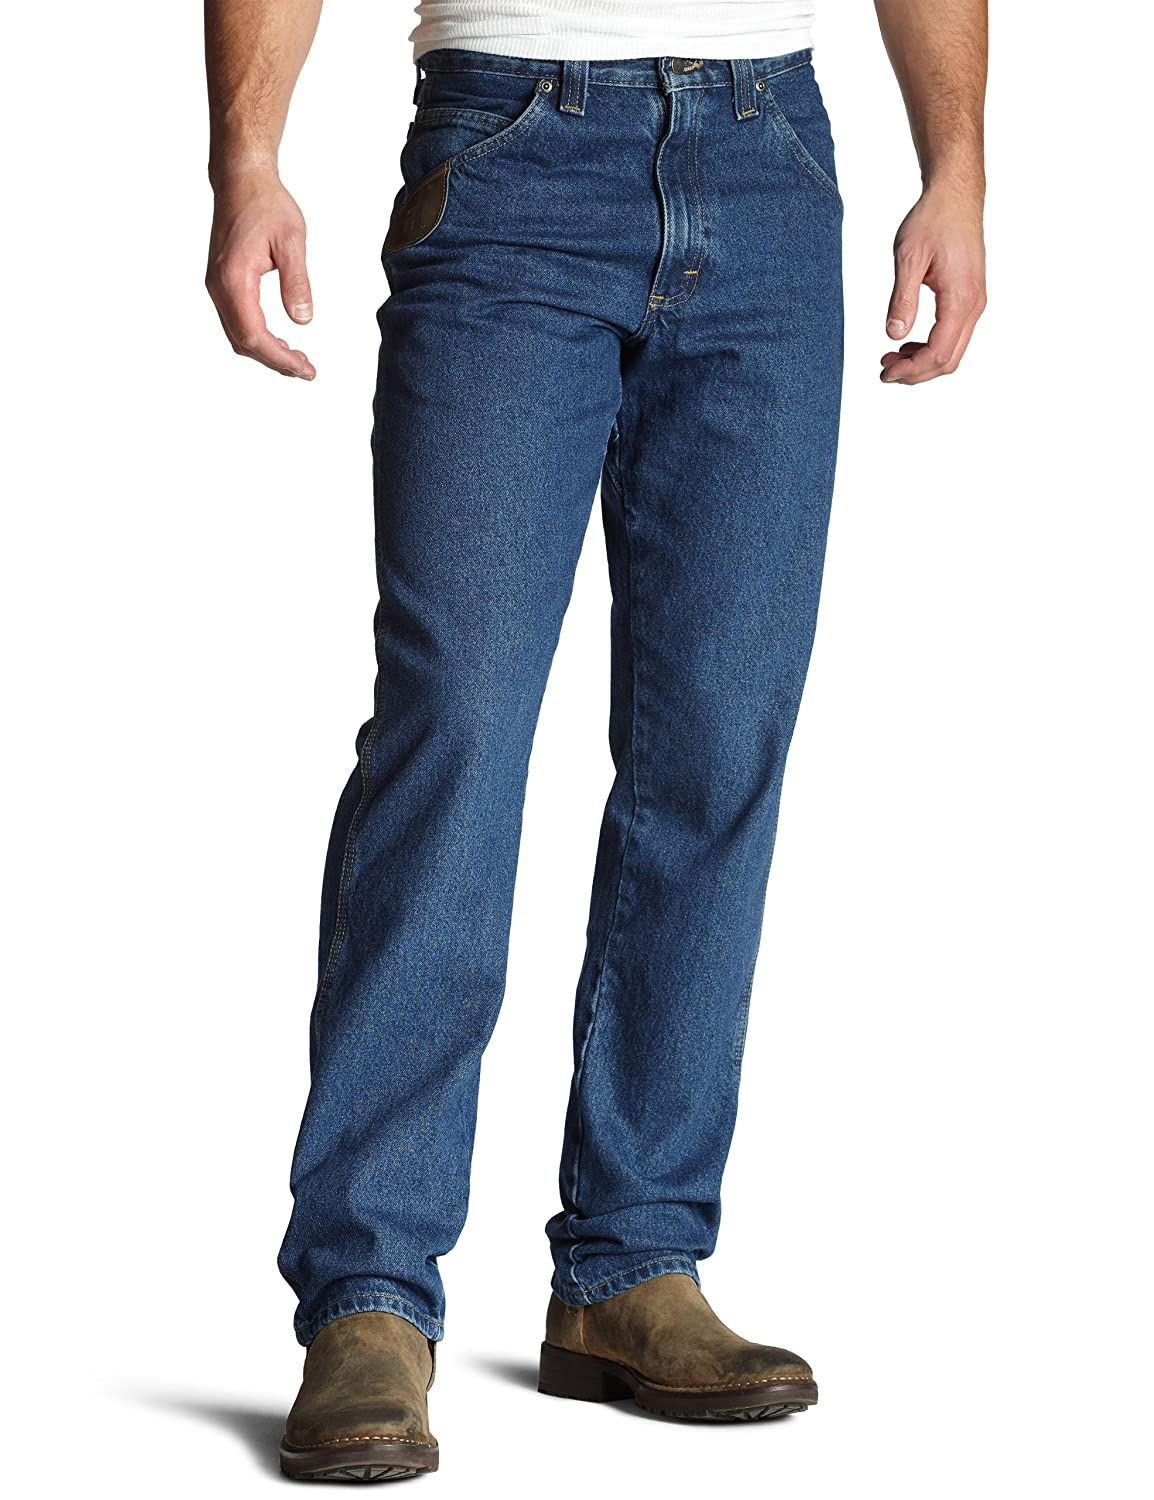 Wrangler RIGGS WORKWEAR Men's Relaxed-Fit Jean 3W050AI